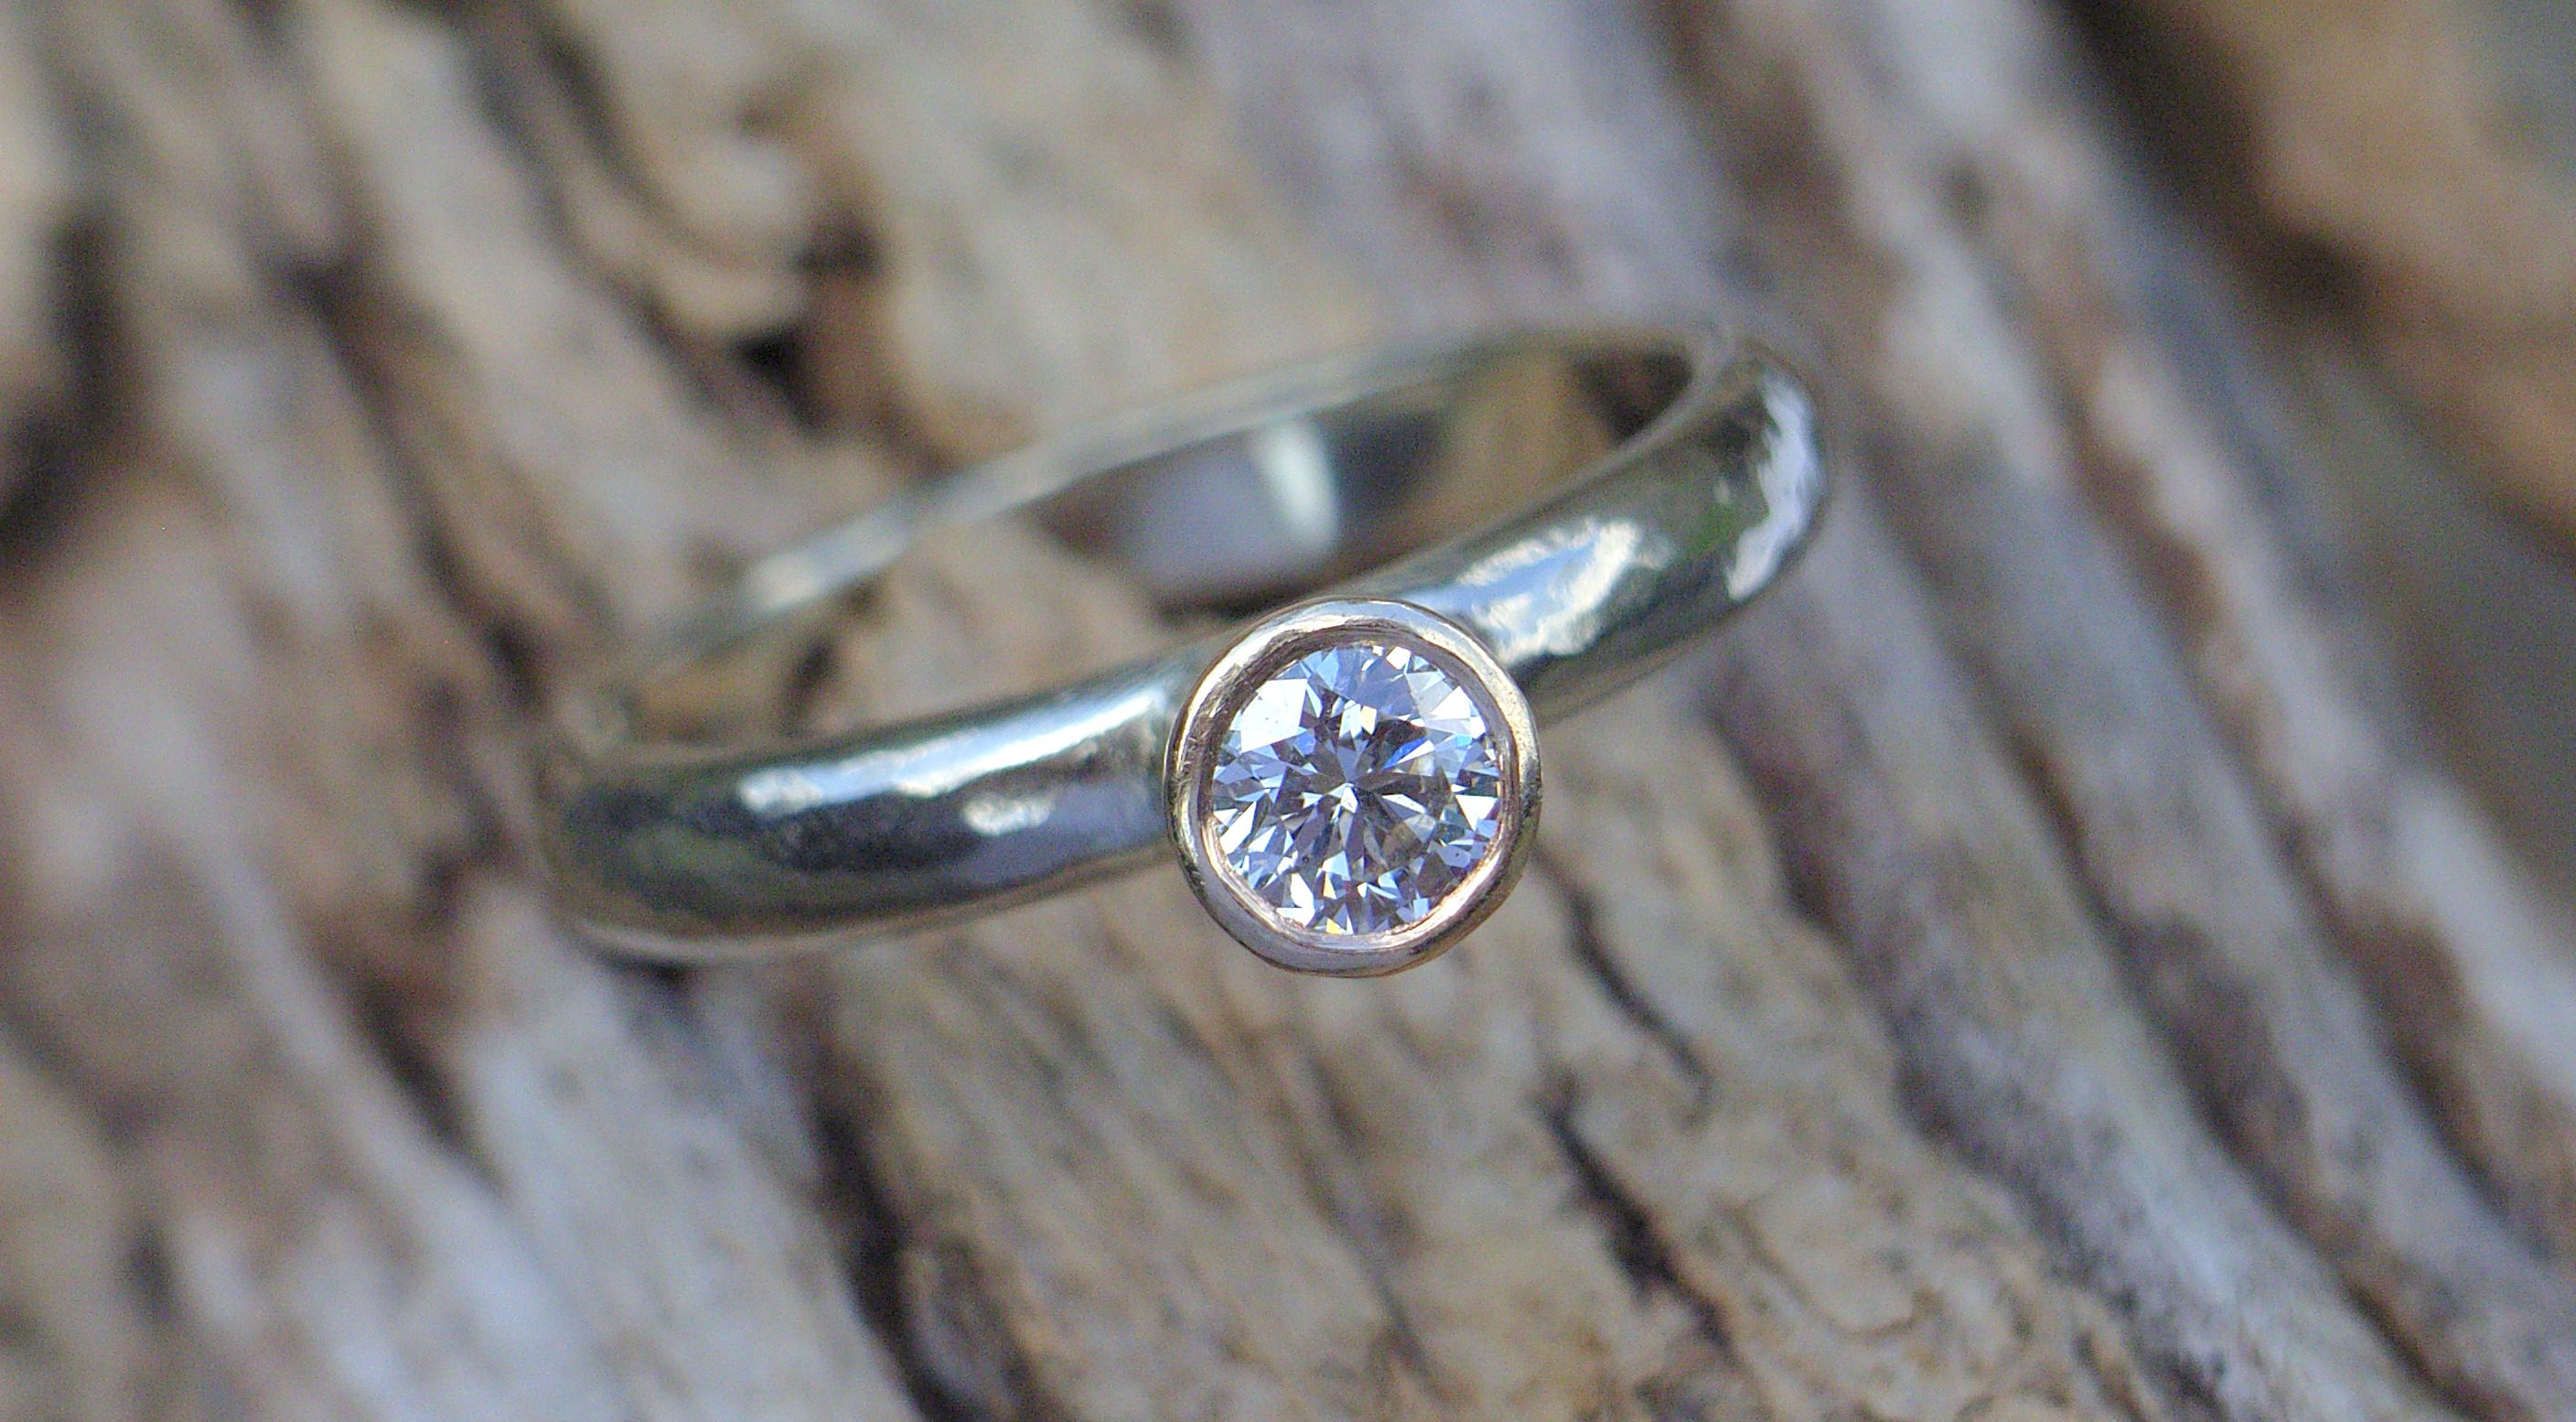 Recycled 14ct White And Yellow Gold With 3ct Diamond Engagement Ring Commission